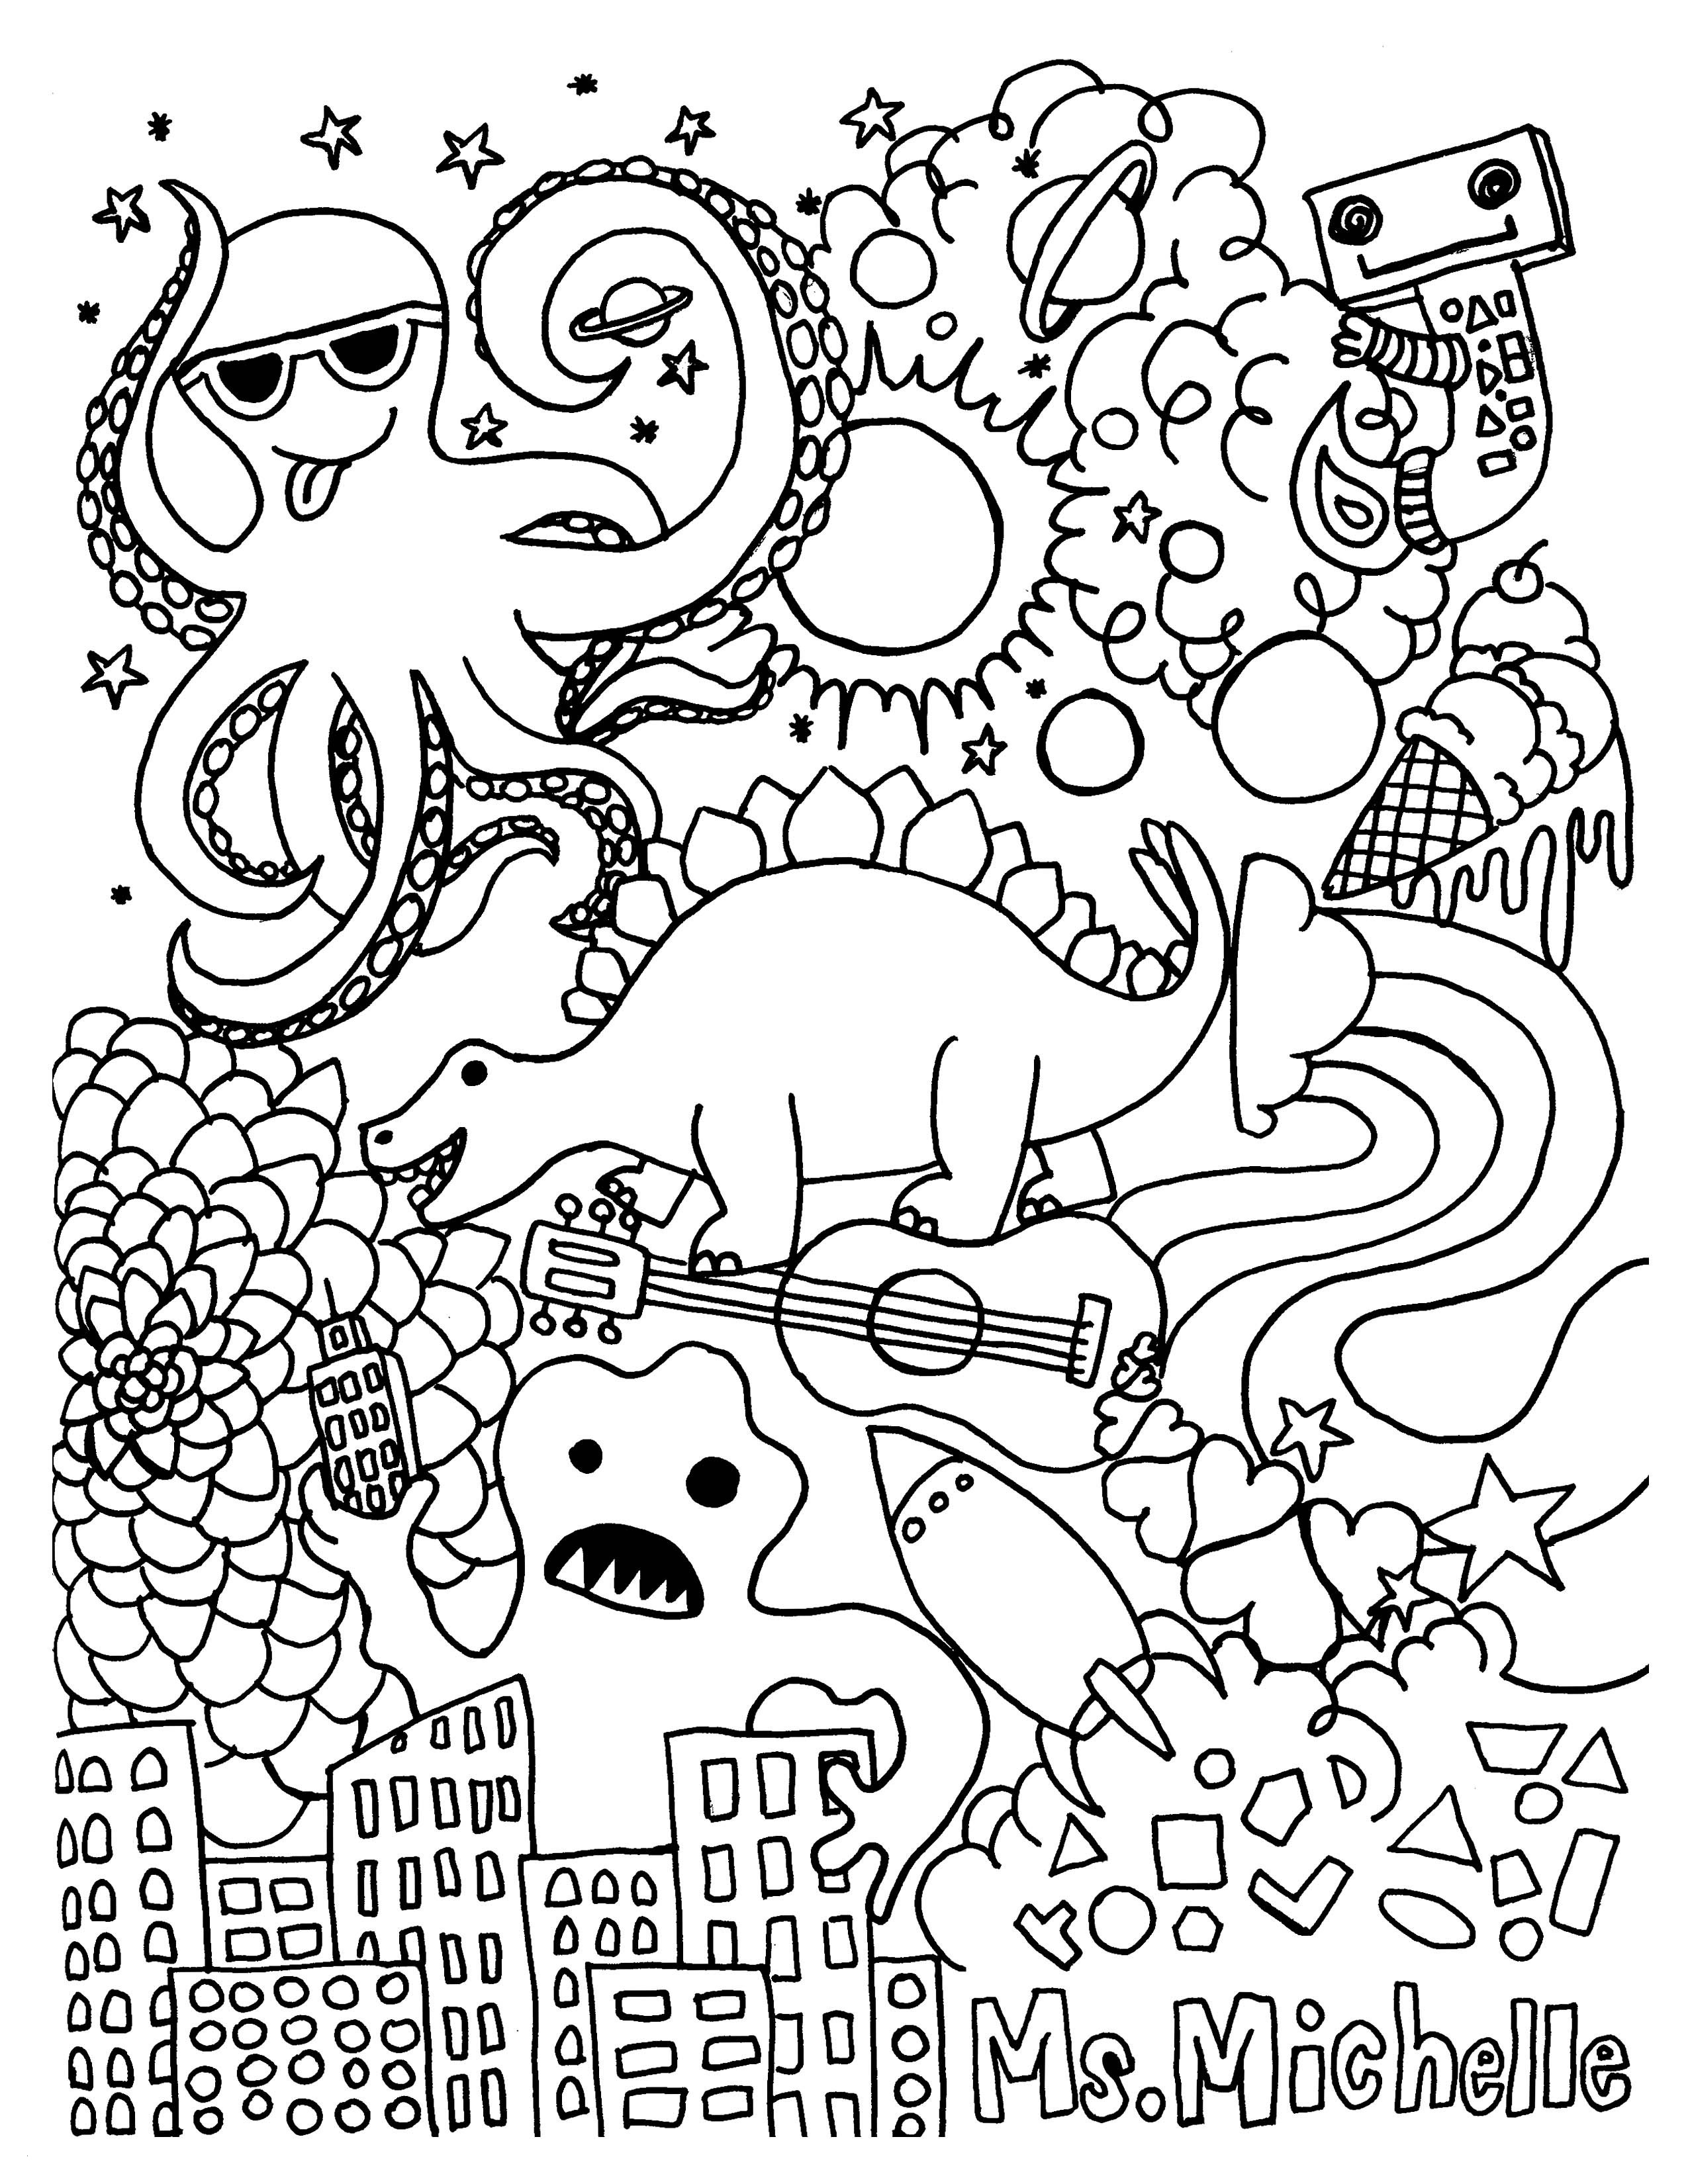 A to Z Coloring Pages  to Print 12g - Free For Children